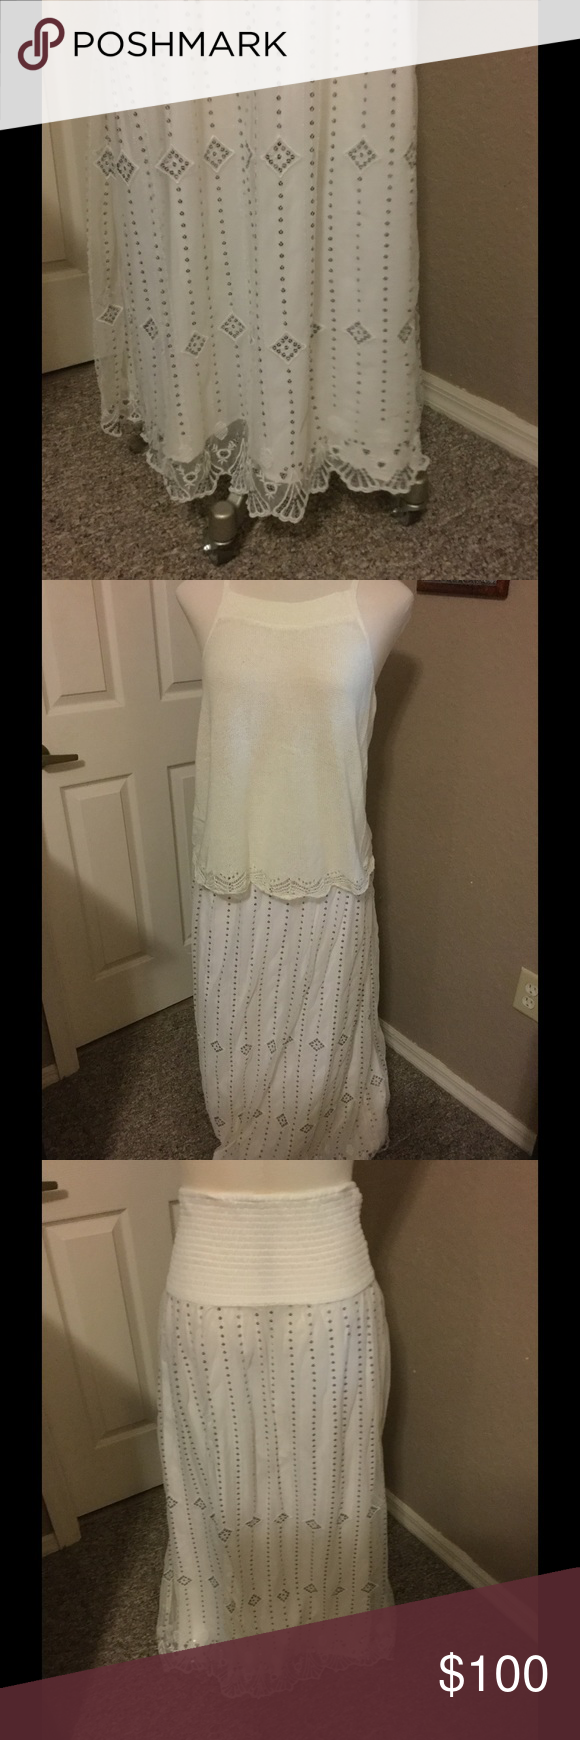 Free People Large ivory/silver sequin maxi Free People Large (fits a 14) maxi skirt. This skirt is simply Gorgeous !!!!!  Purchased at Nordstroms to wear to the islands.  Worn once. Mint/ excellent condition.  No missing sequins.  Real beachy look  Free People Skirts Maxi